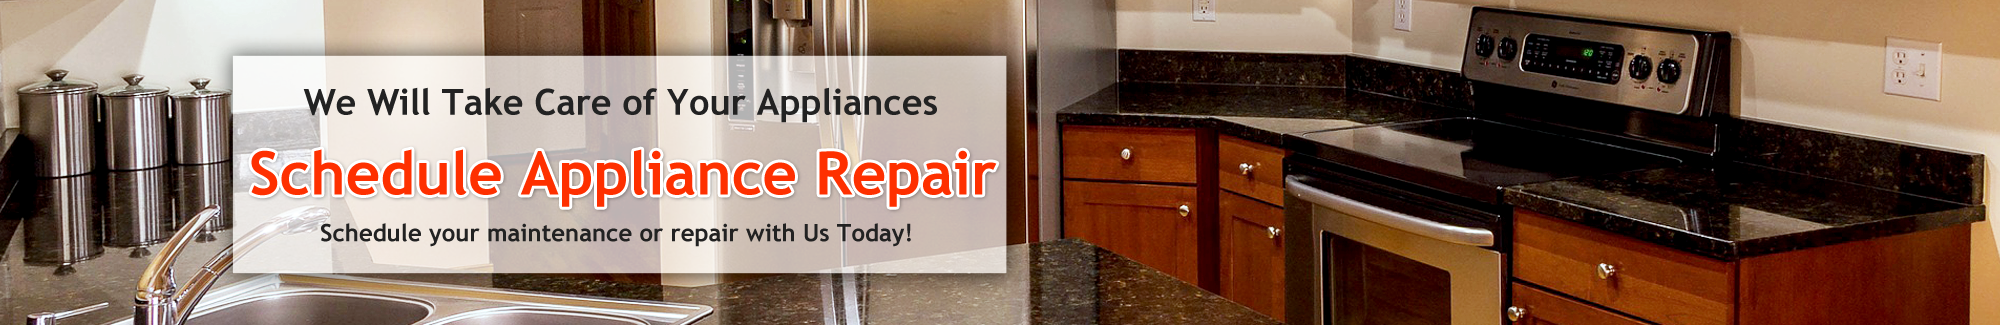 Let Appliance and Air Care Experts handle your Appliance maintenance in Dalla, TX.